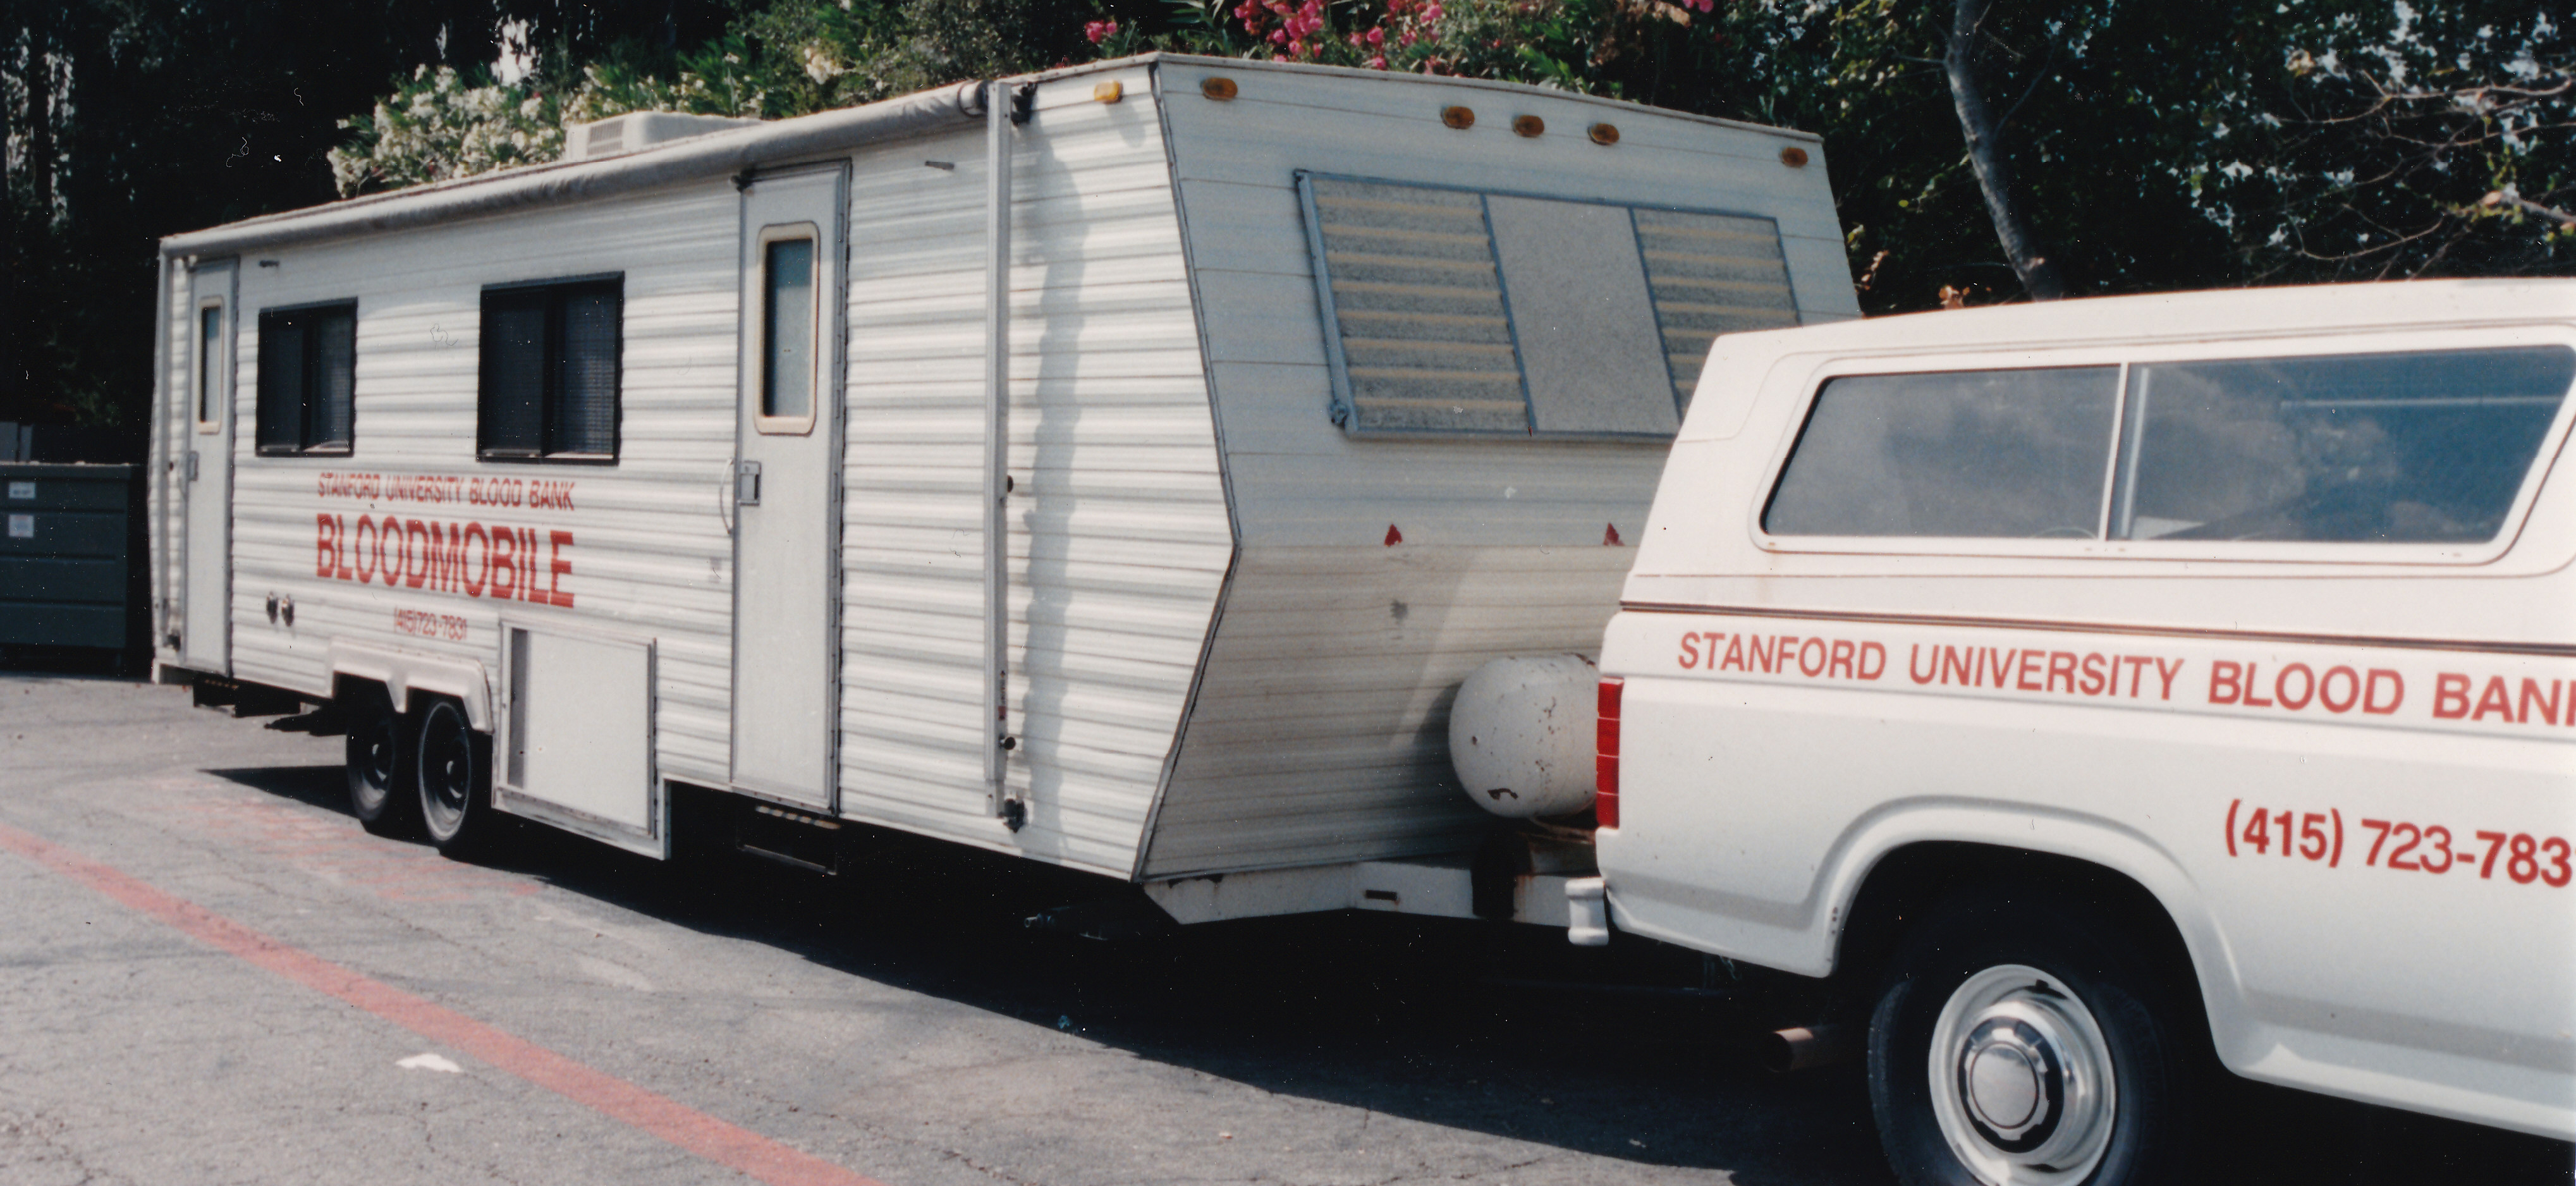 Original SBC bloodmobile